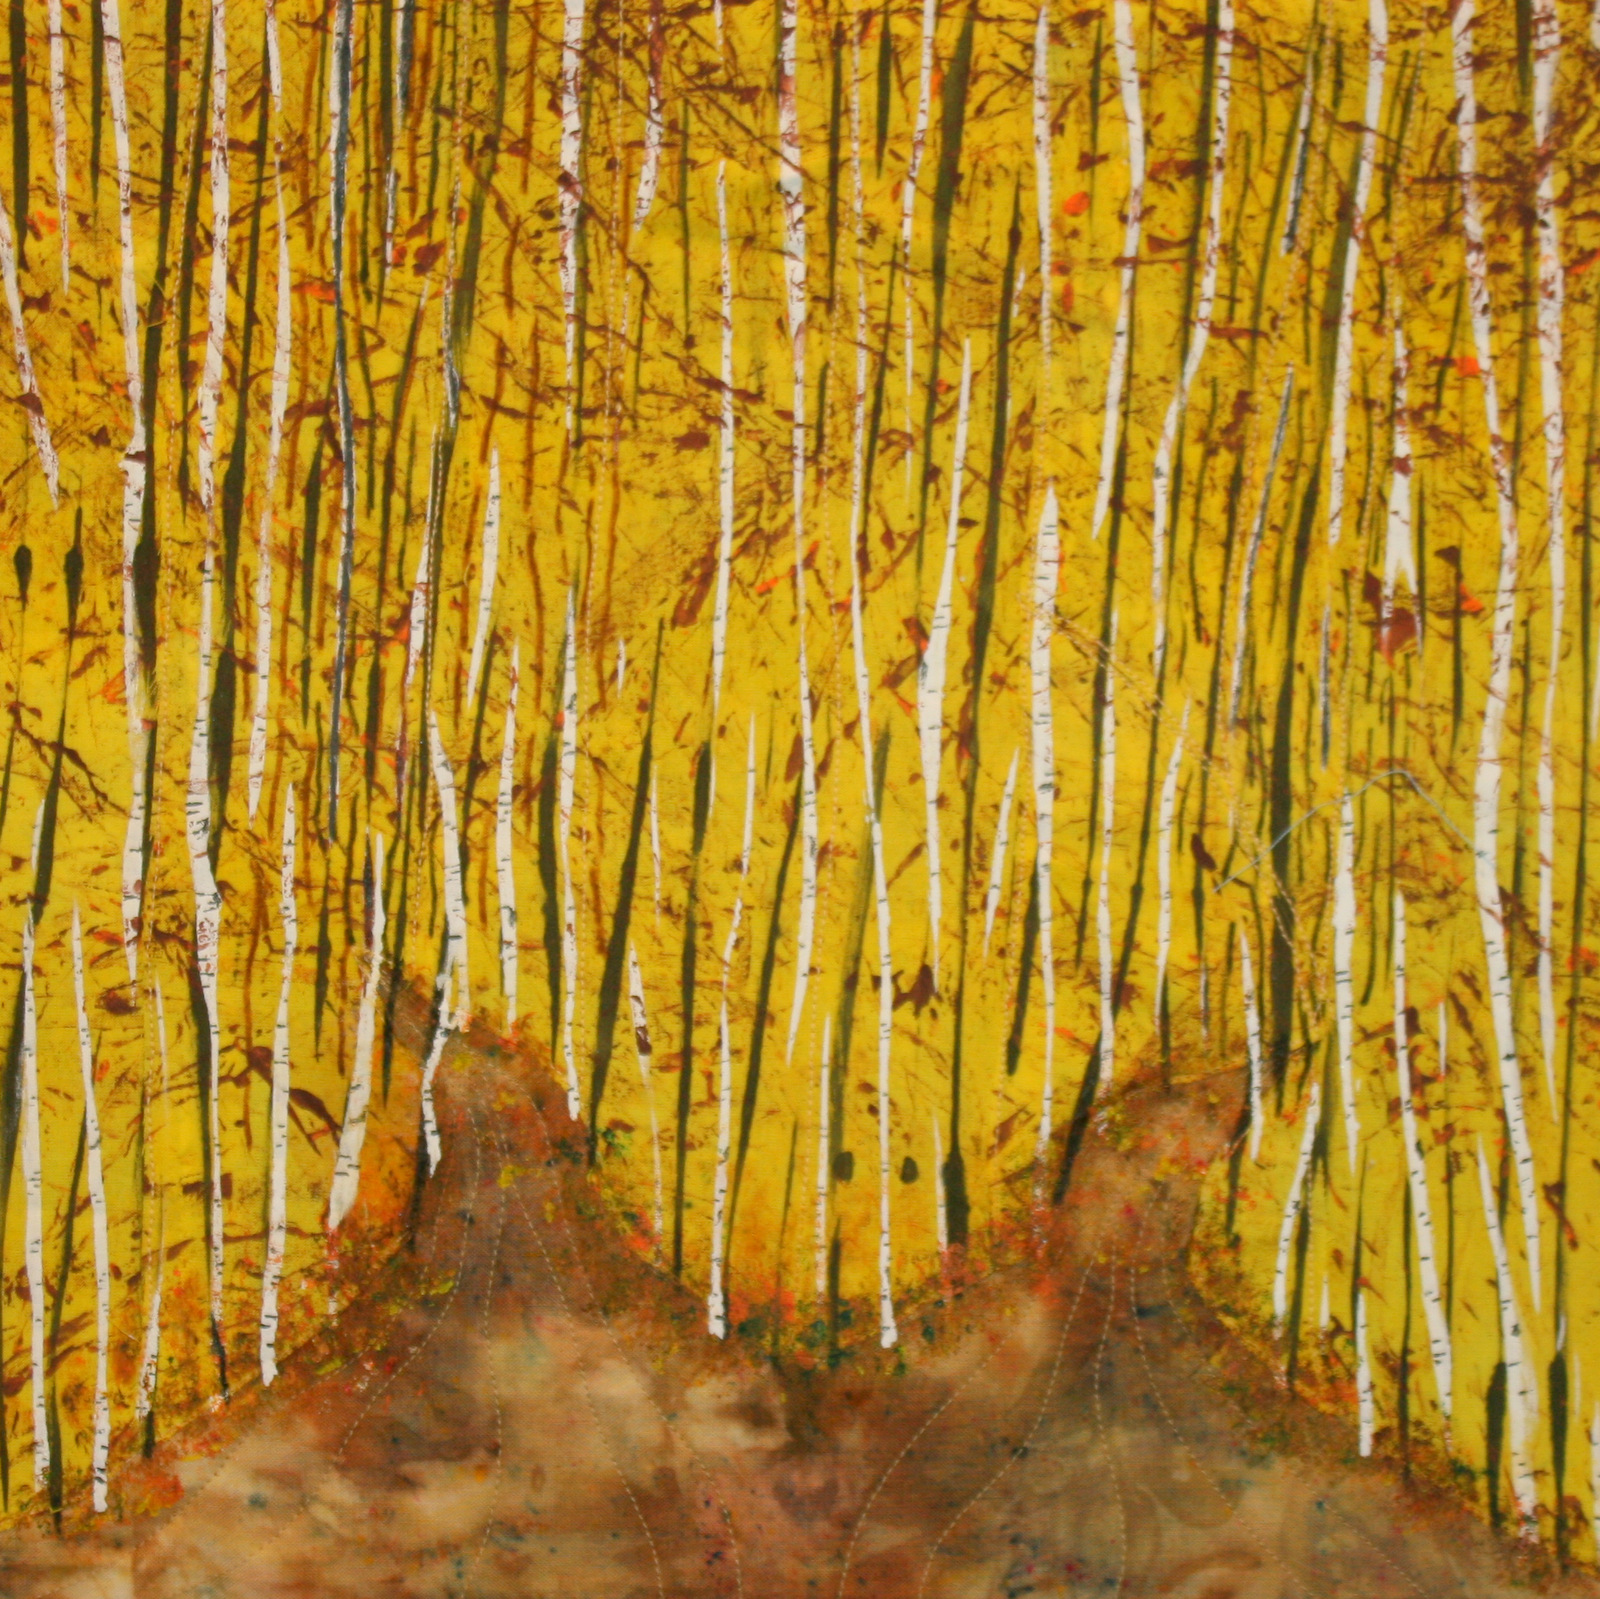 an analysis of robert frost on the two roads diverged in a yellow wood The road not taken by robert frost commentstwo roads diverged in a yellow wood and sorry i could not travel both and be one traveler long i.